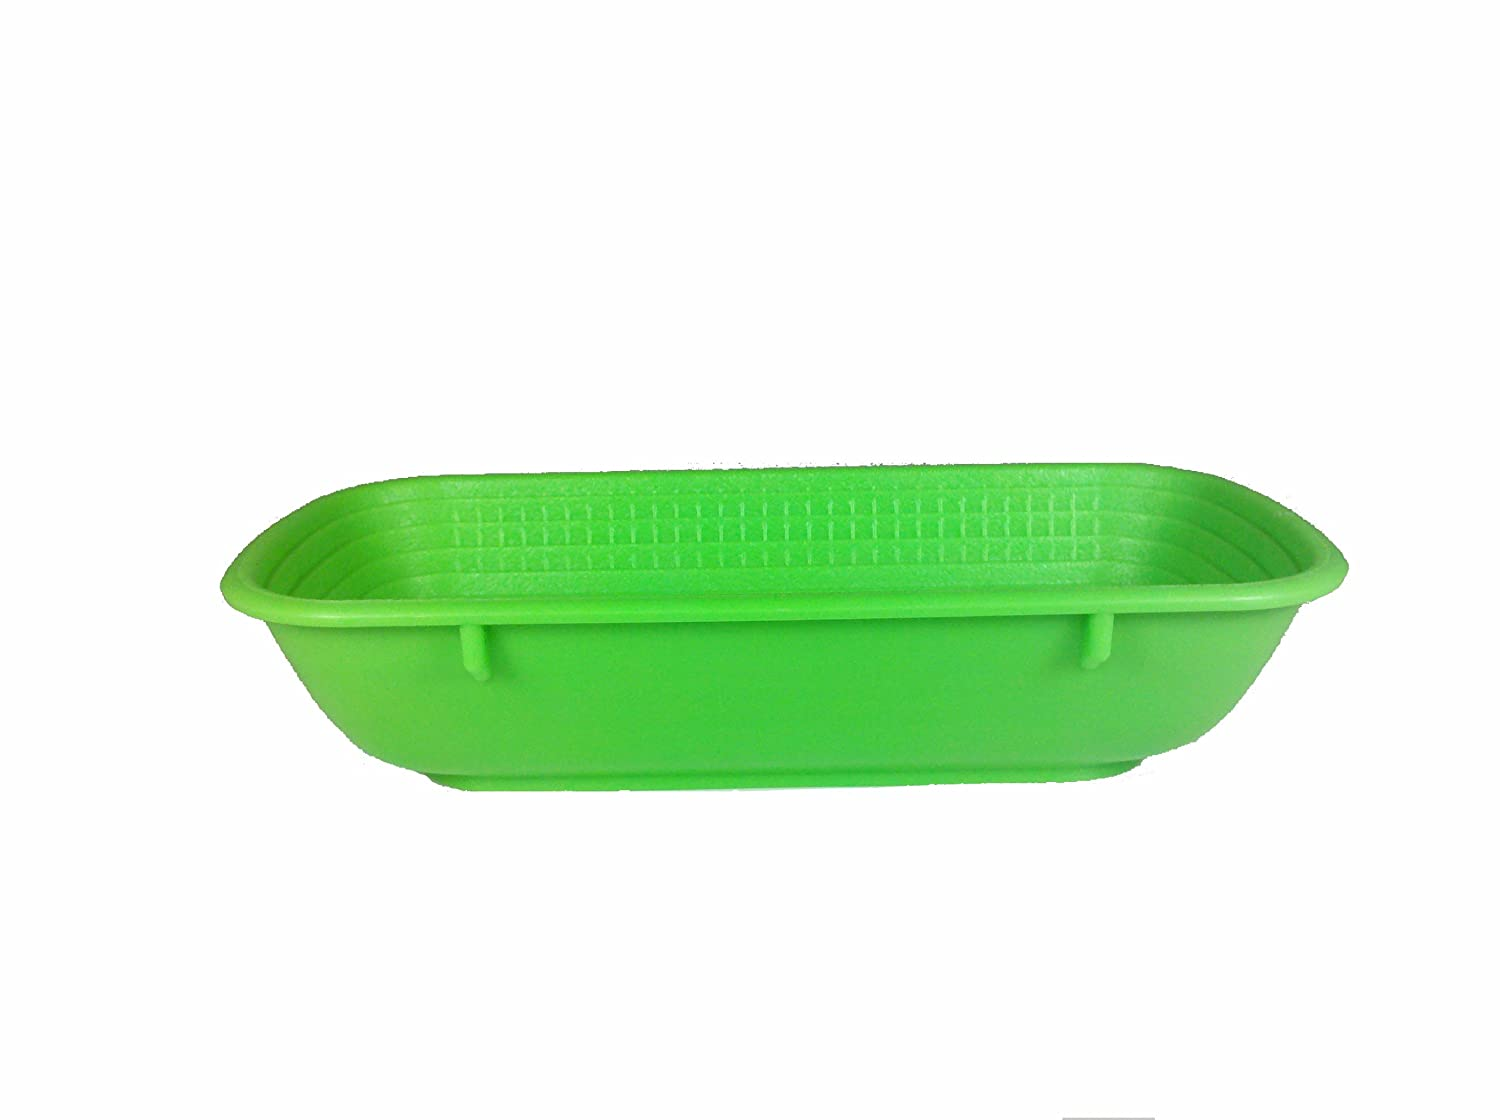 Paderno World Cuisine 10-5/8-Inch by 4-3/4-Inch Rectangular Green Proofing Basket (.5 Kilo) 47043-27